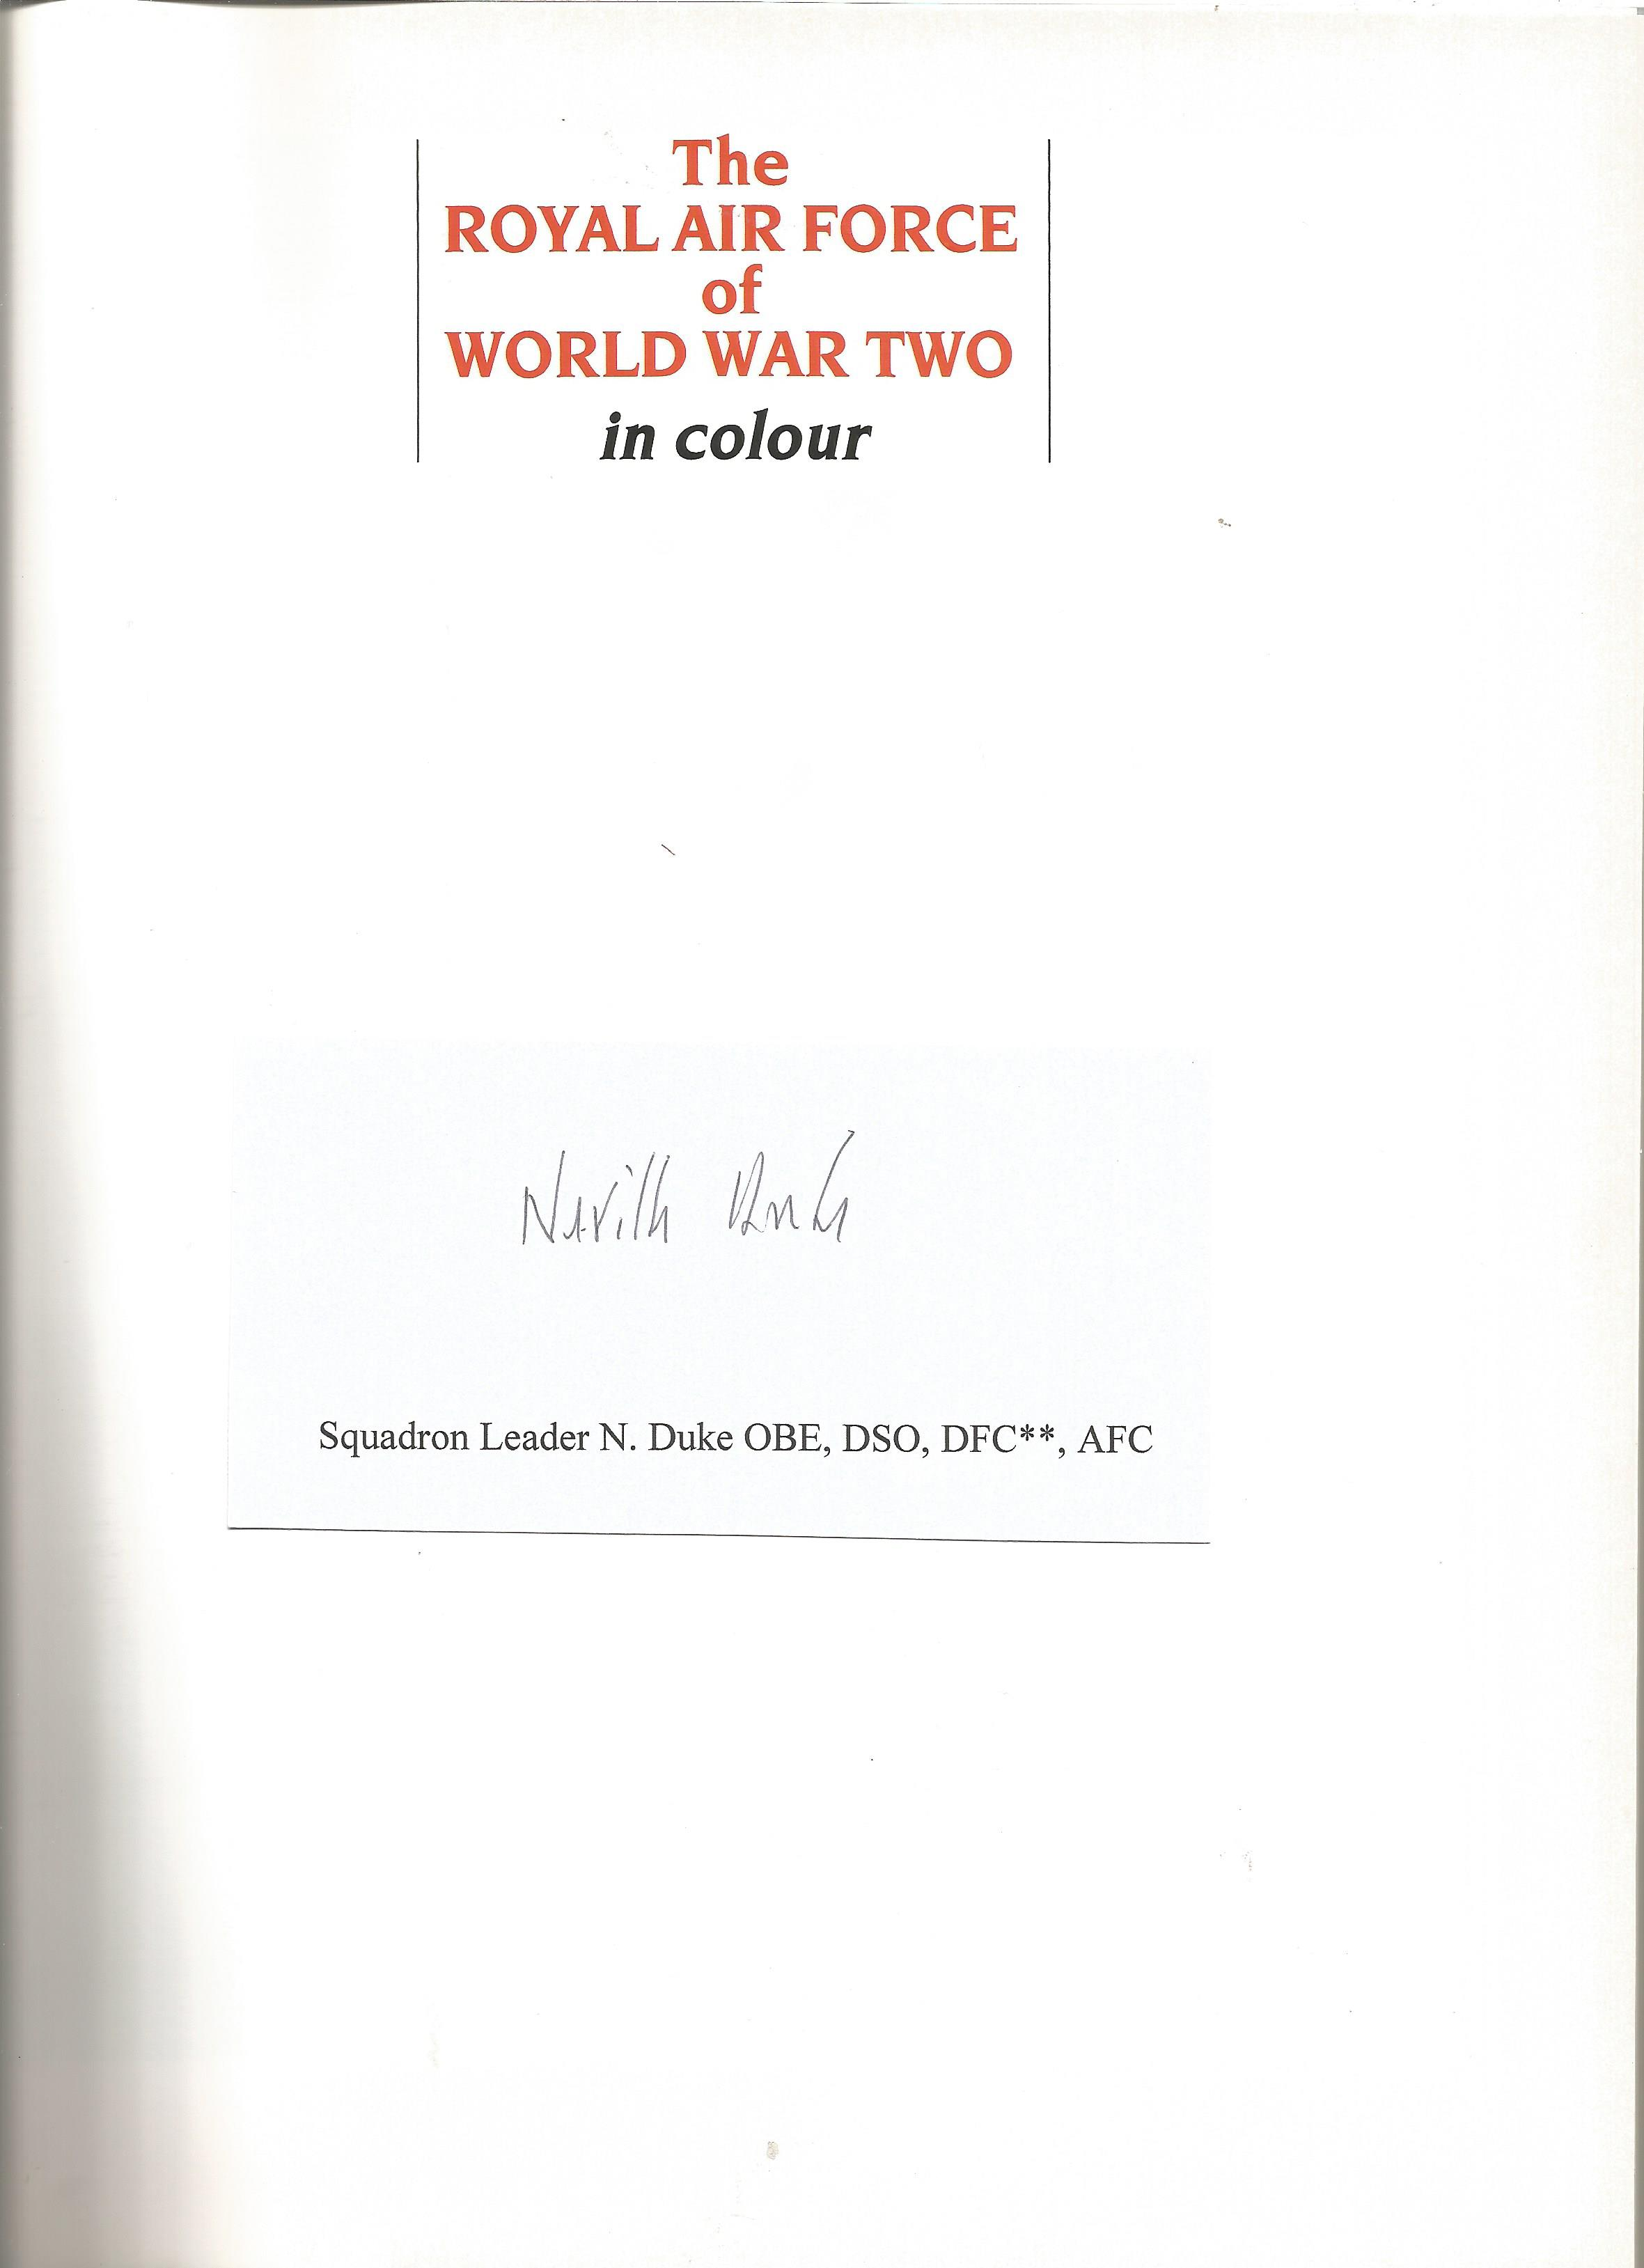 Sqn Ldr Neville Duke DSO DFC signed bookplate in The Royal Air Force of WWII Freeman, Roger hardback - Image 2 of 2